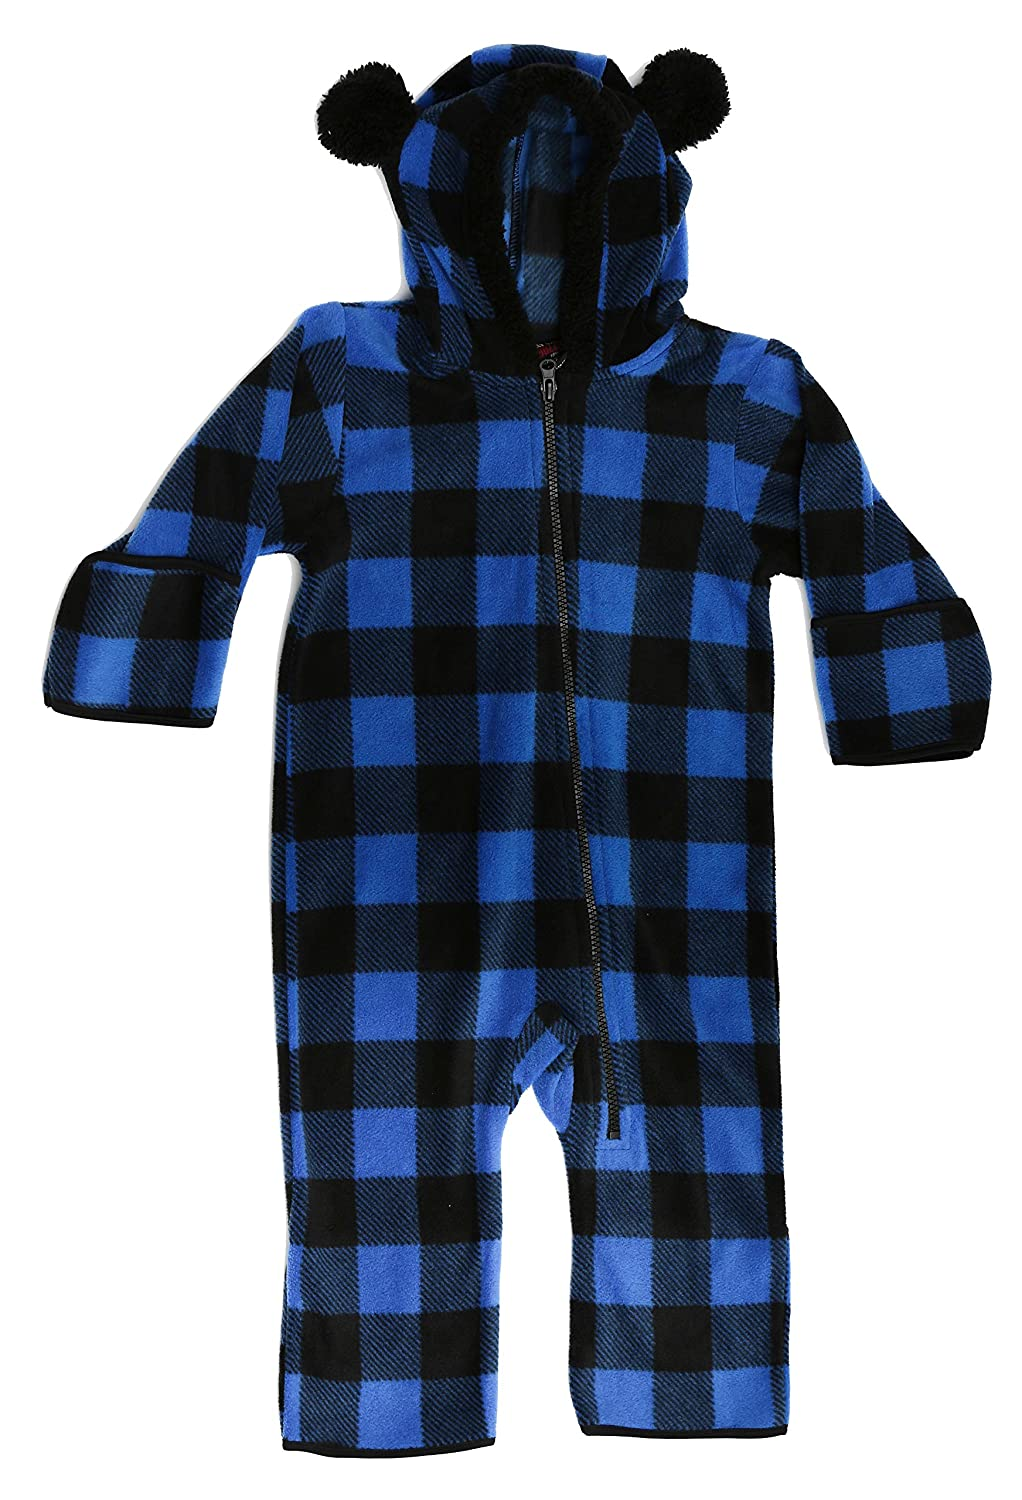 acb721f27 Amazon.com  At The Buzzer Baby Boys Fleece Pram Snowsuit Bunting ...